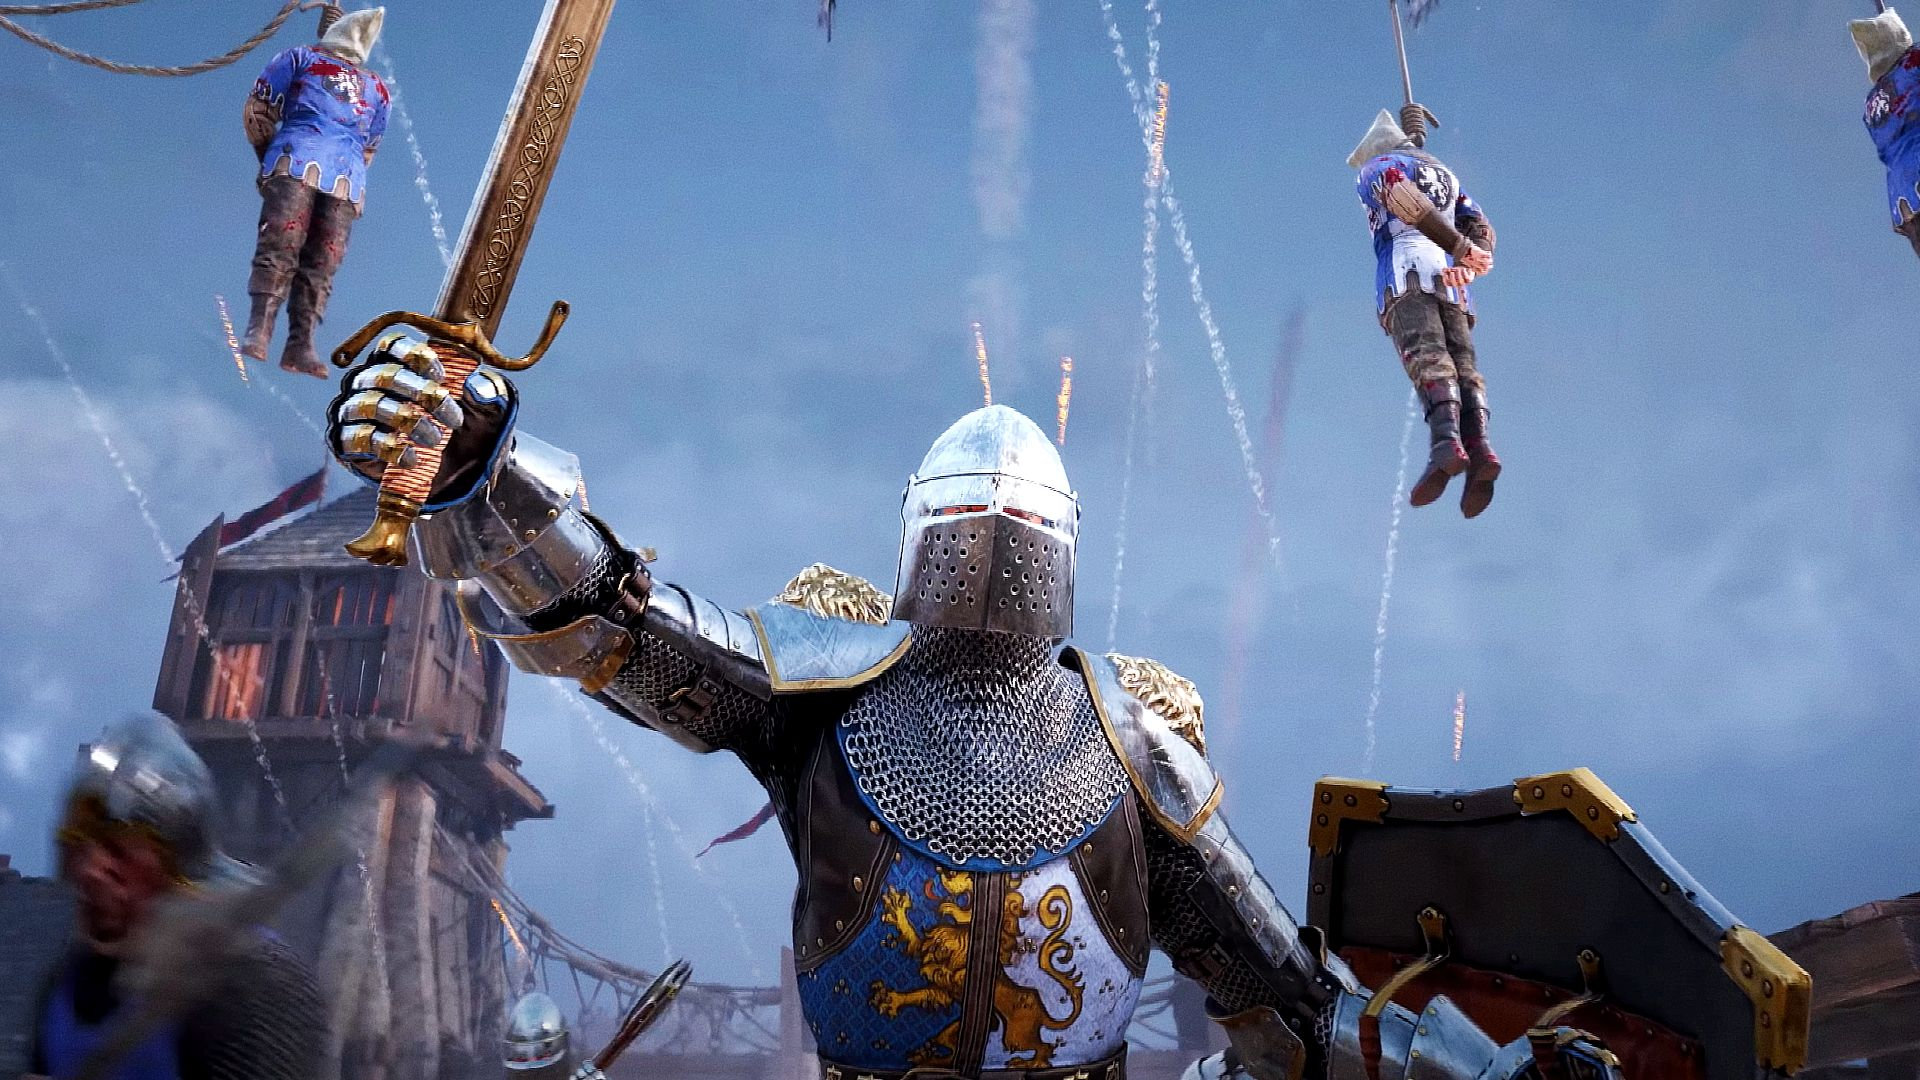 Chivalry 2 review: a gory good time